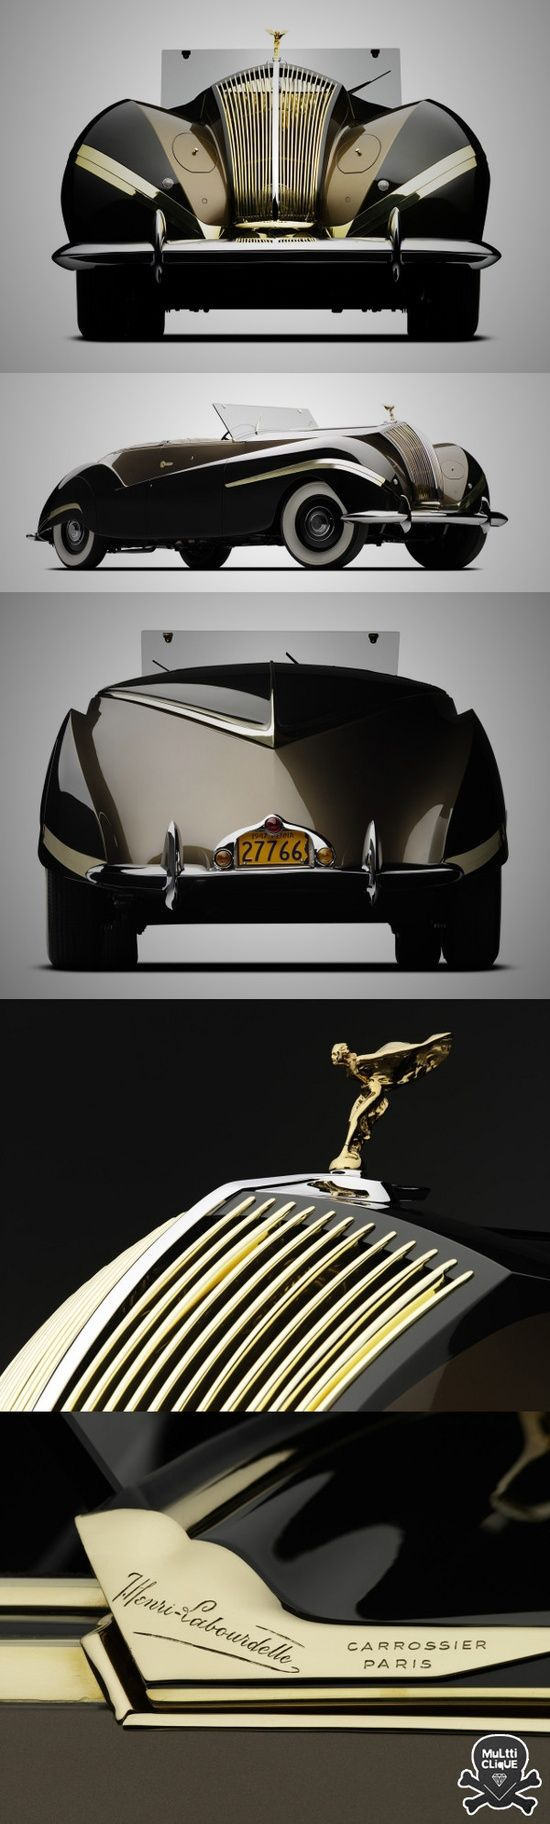 "1939 Rolls-Royce Phantom III ""Vutotal"" Cabriolet by Labourdette Whether #coupon code nicesup123 gets 25% off at  Provestra.com Skinception.com"